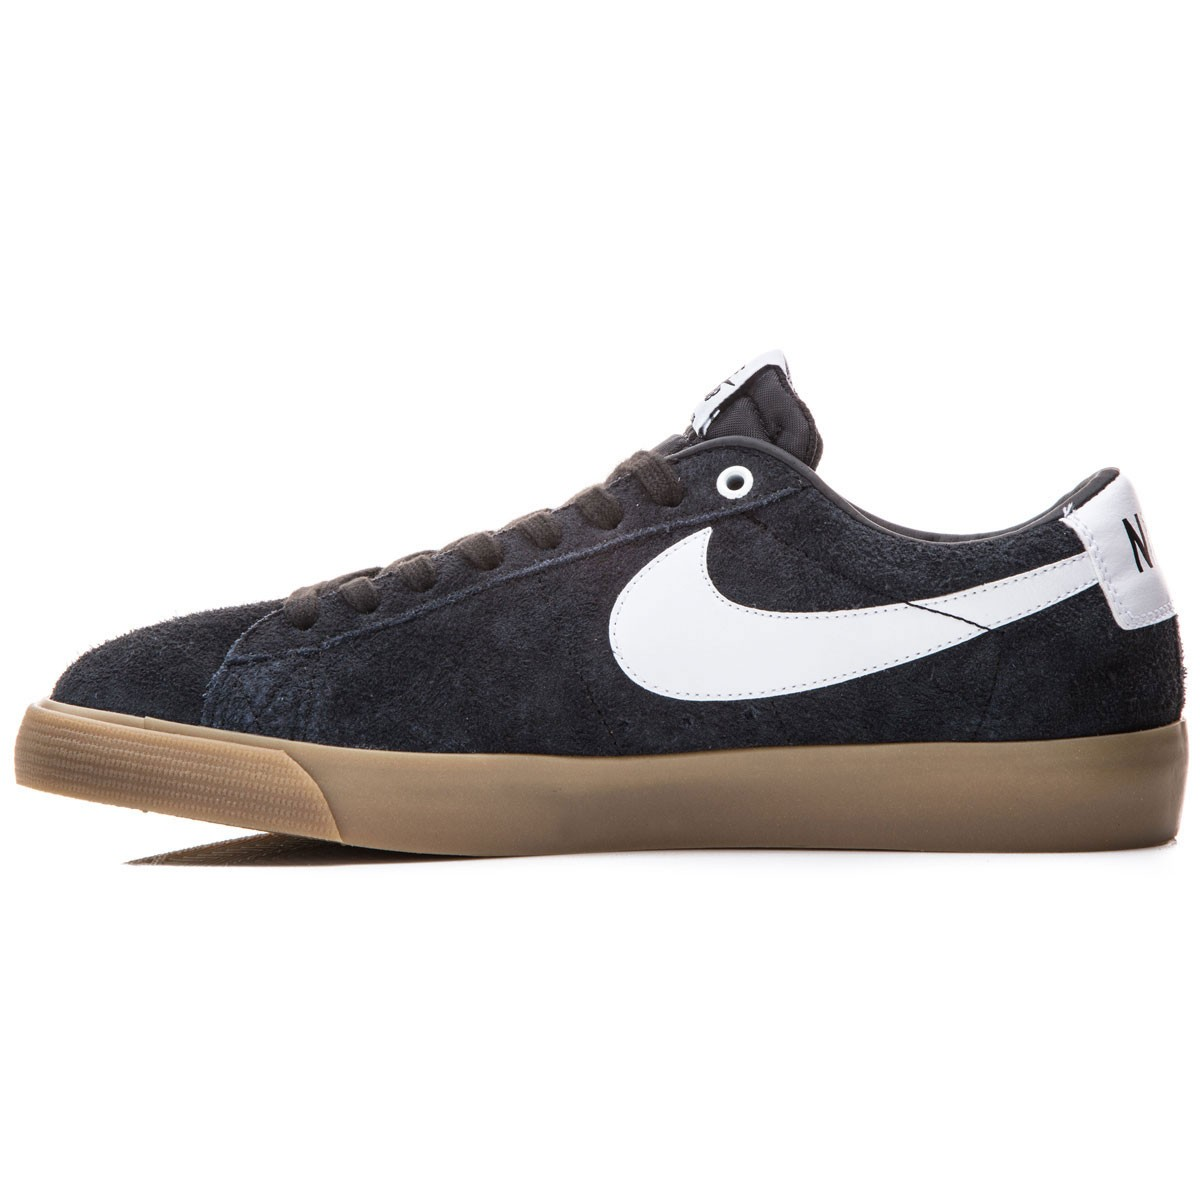 premium selection a397d f8198 Nike Blazer Low GT QS Shoes - Black/Sail